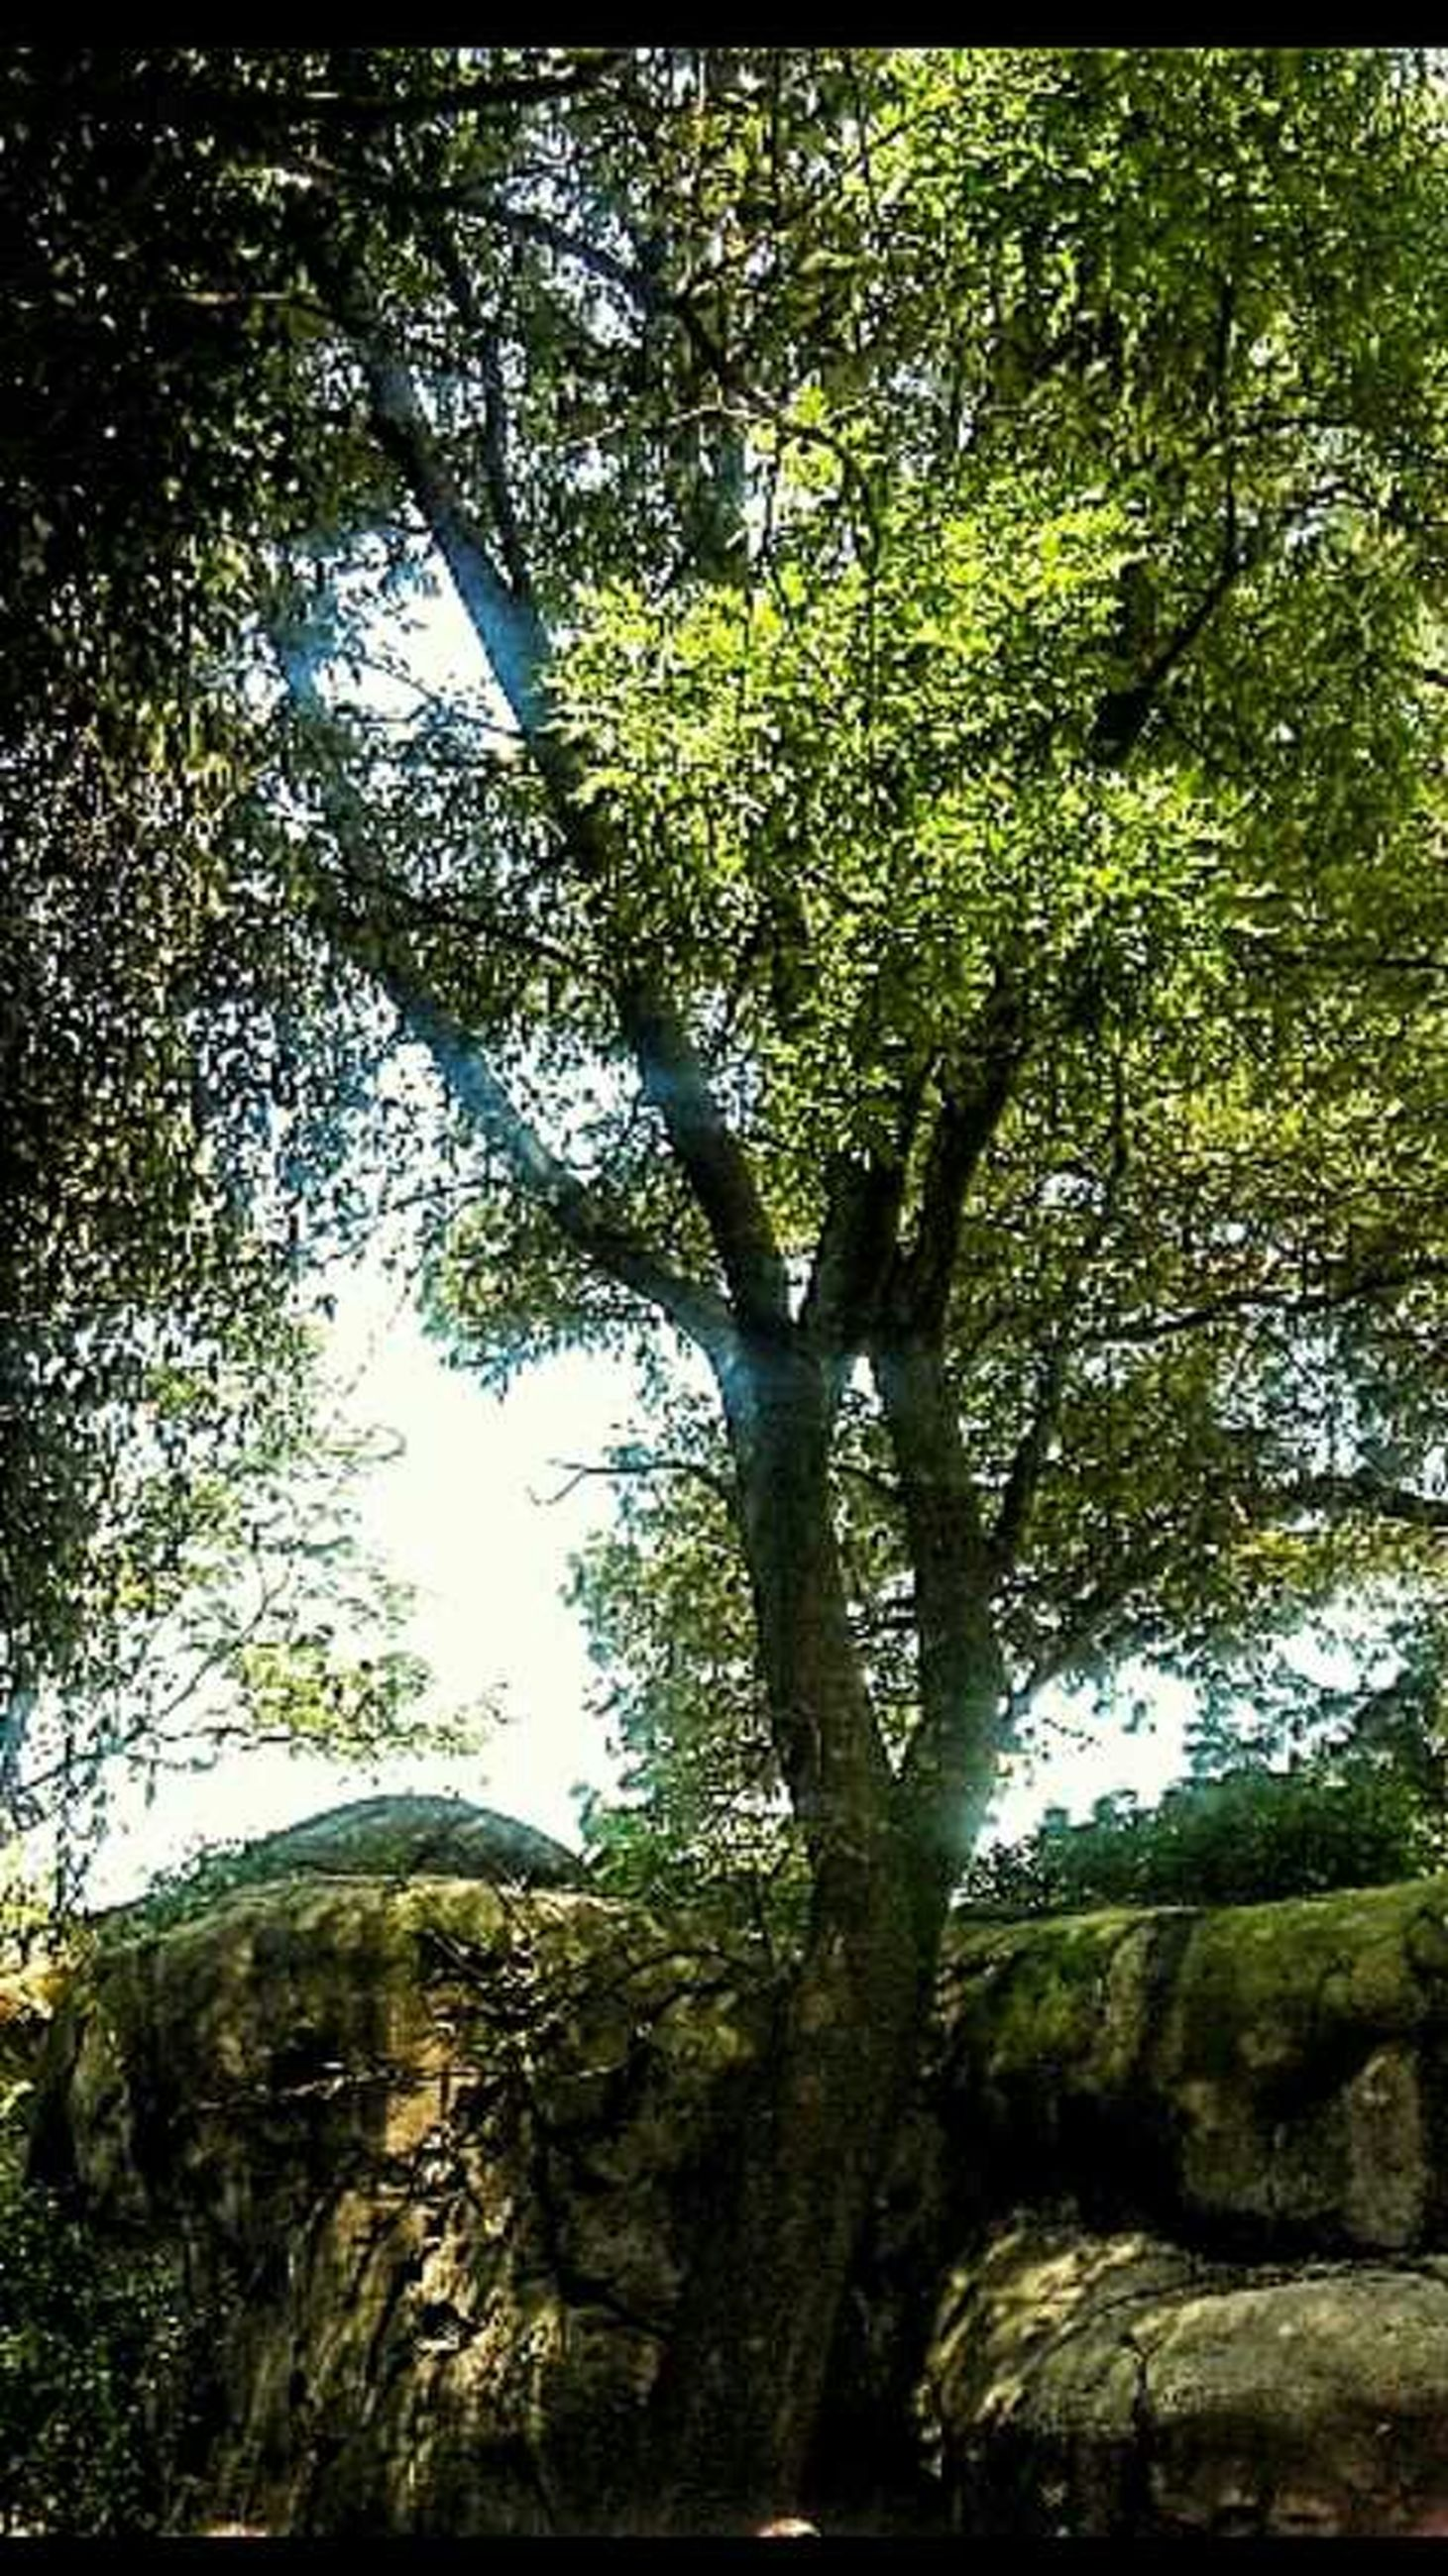 tree, growth, tree trunk, low angle view, branch, tranquility, nature, green color, forest, beauty in nature, transfer print, tranquil scene, scenics, auto post production filter, day, sunlight, sky, outdoors, no people, woodland